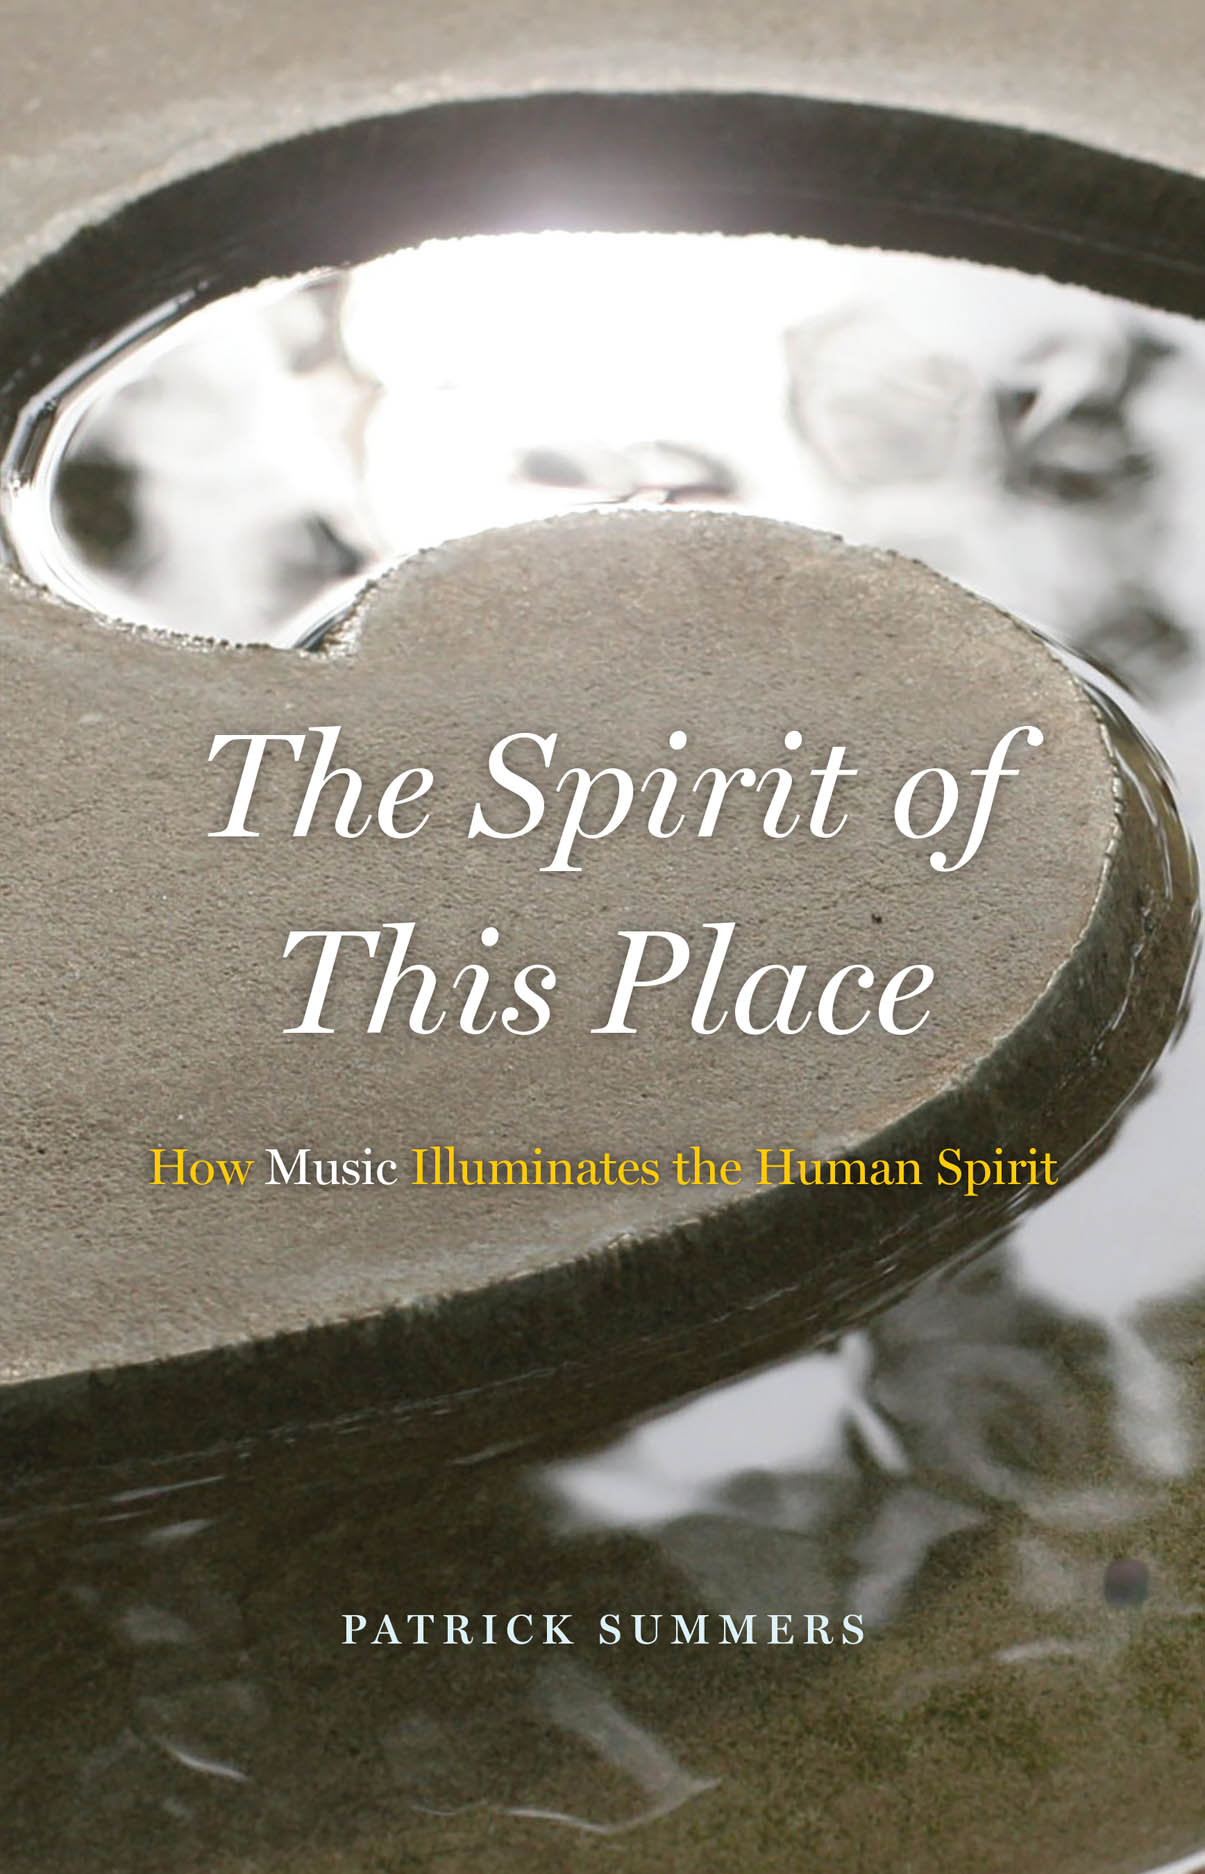 The Spirit of This Place: How Music Illuminates the Human Spirit